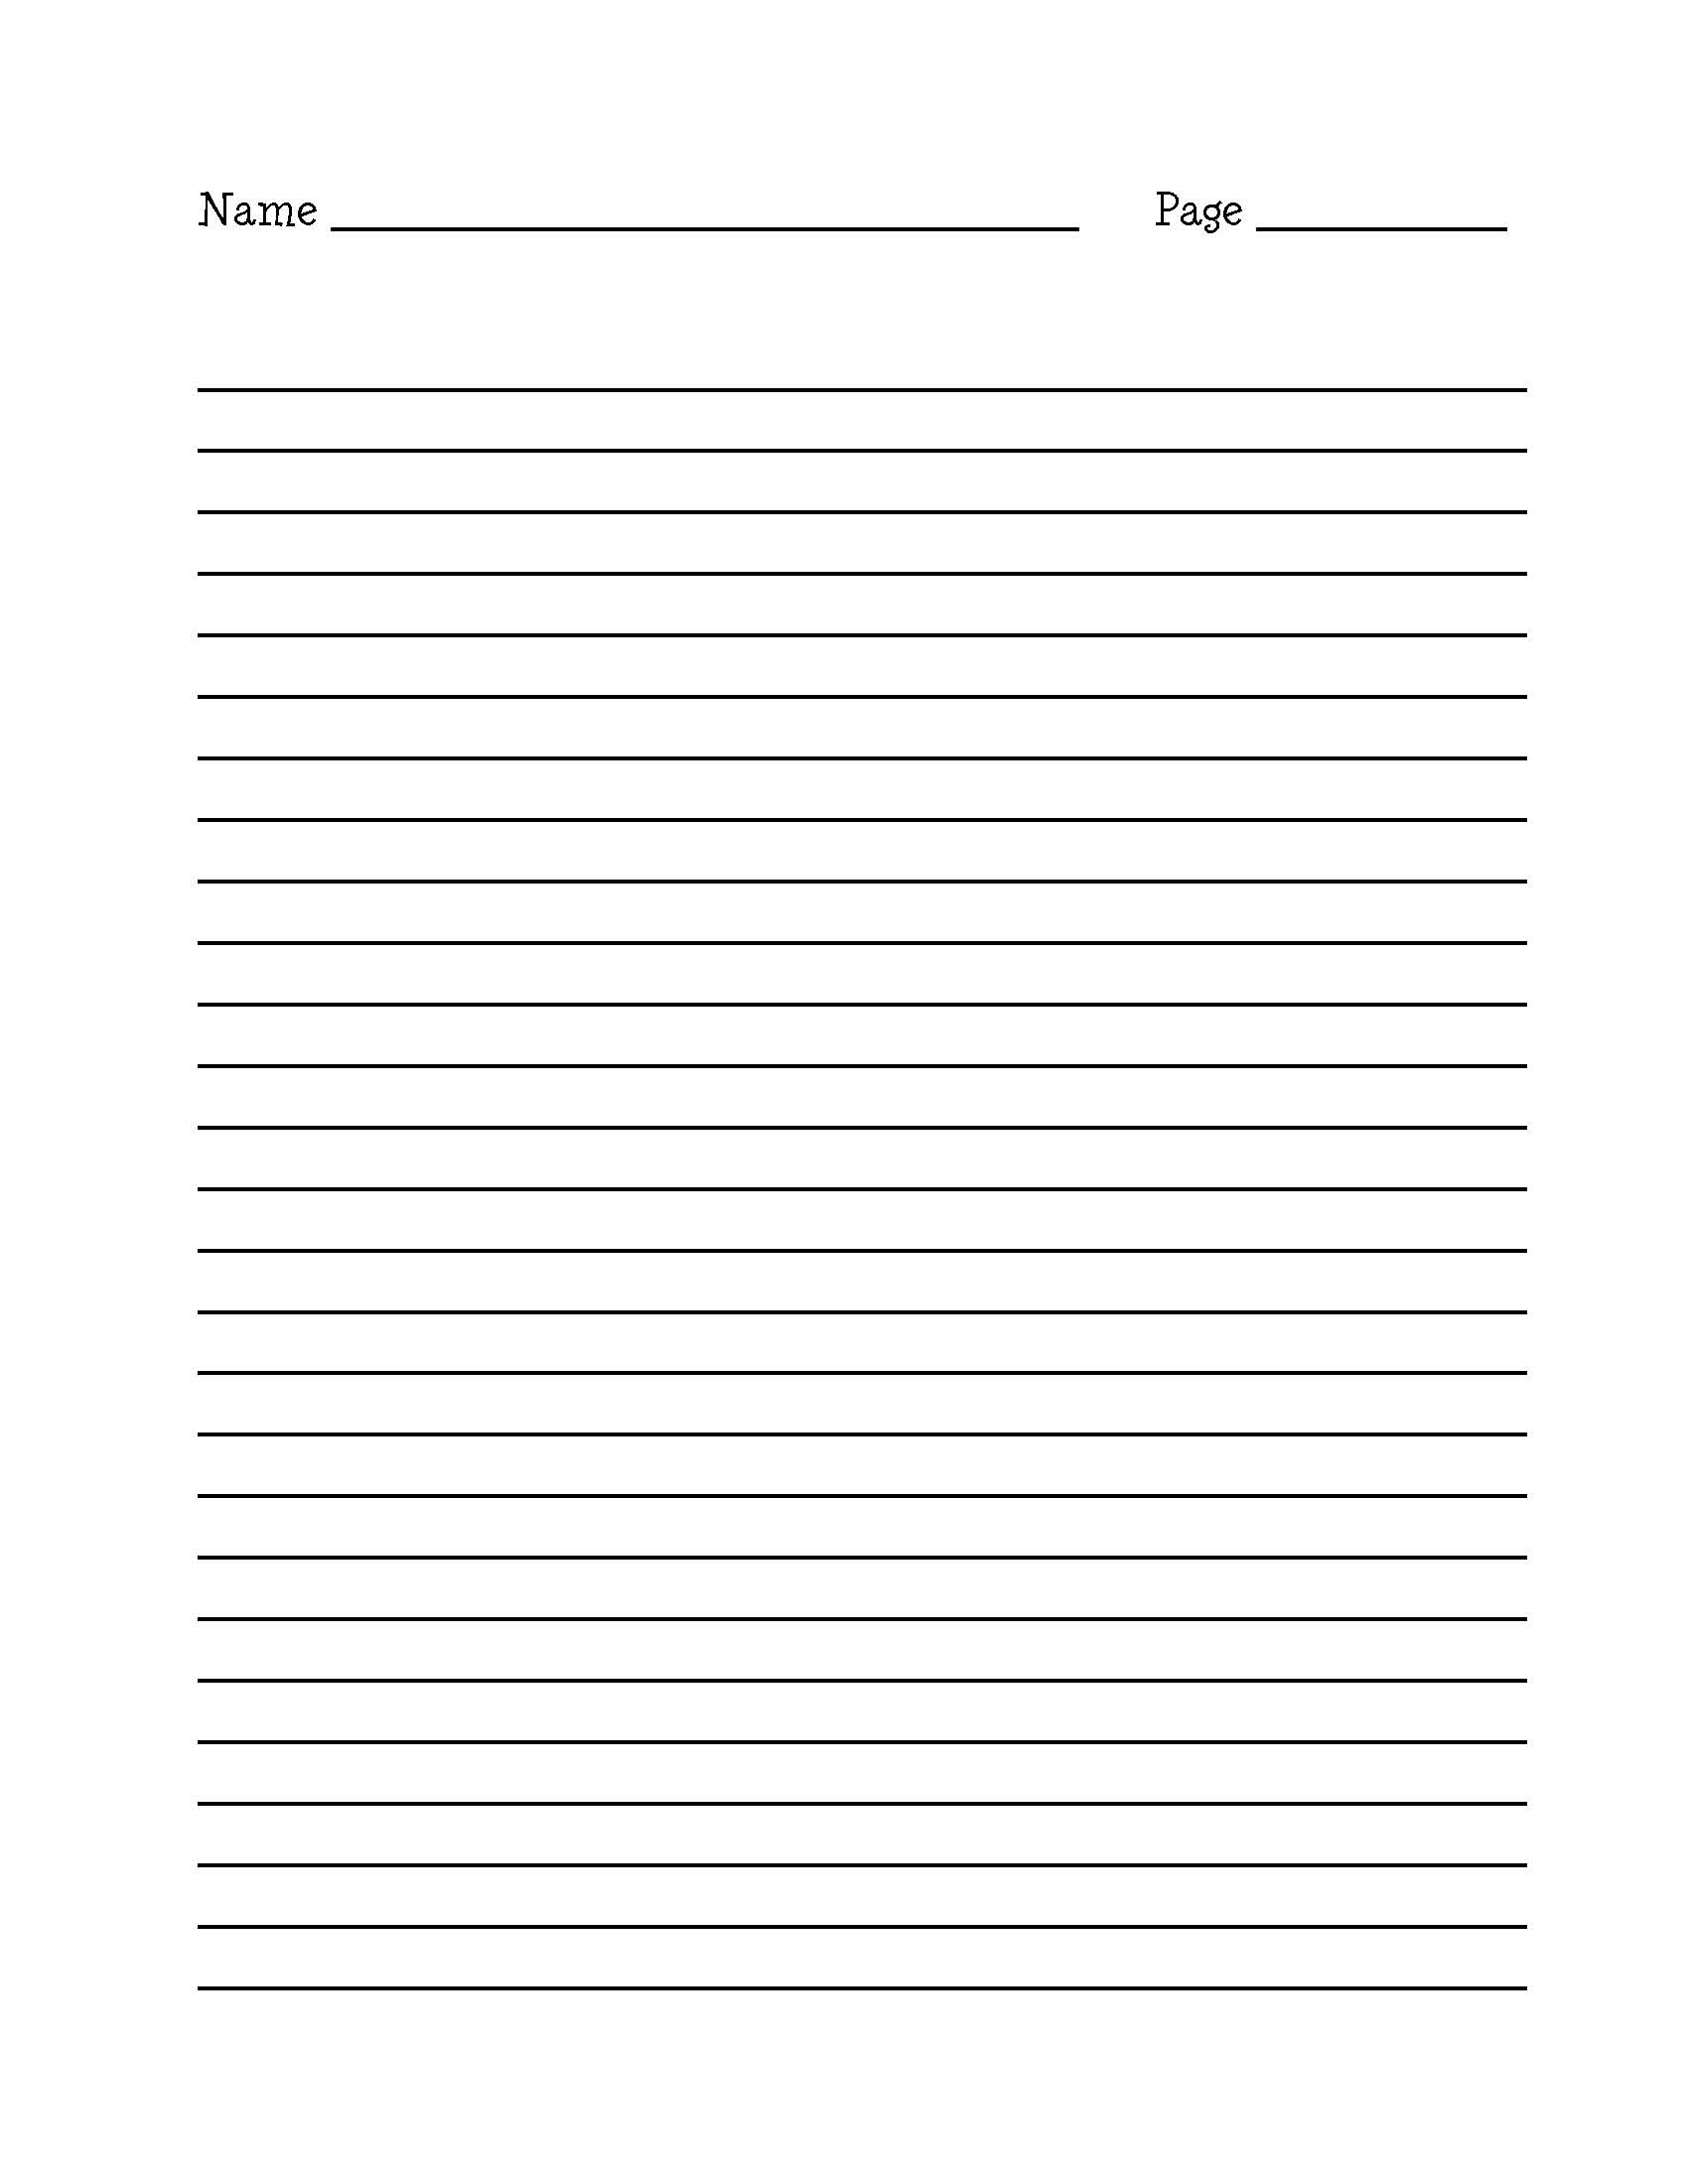 School Themed Lined Writing Paper: School Themed, Lined, Writing Paper Can  Make You Love Telling You All Their Ideas And Dreams For This Very Special  Year!  Lined Paper Template Word